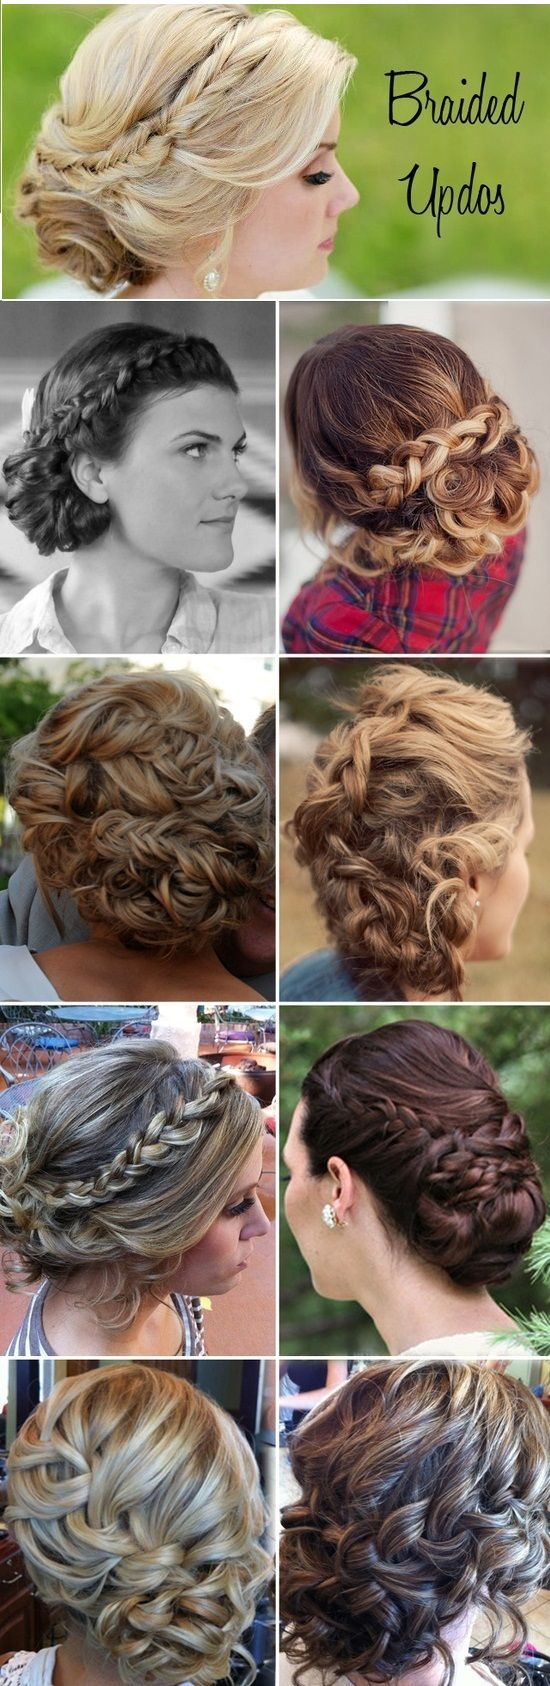 Updo Hairstyles using braids.